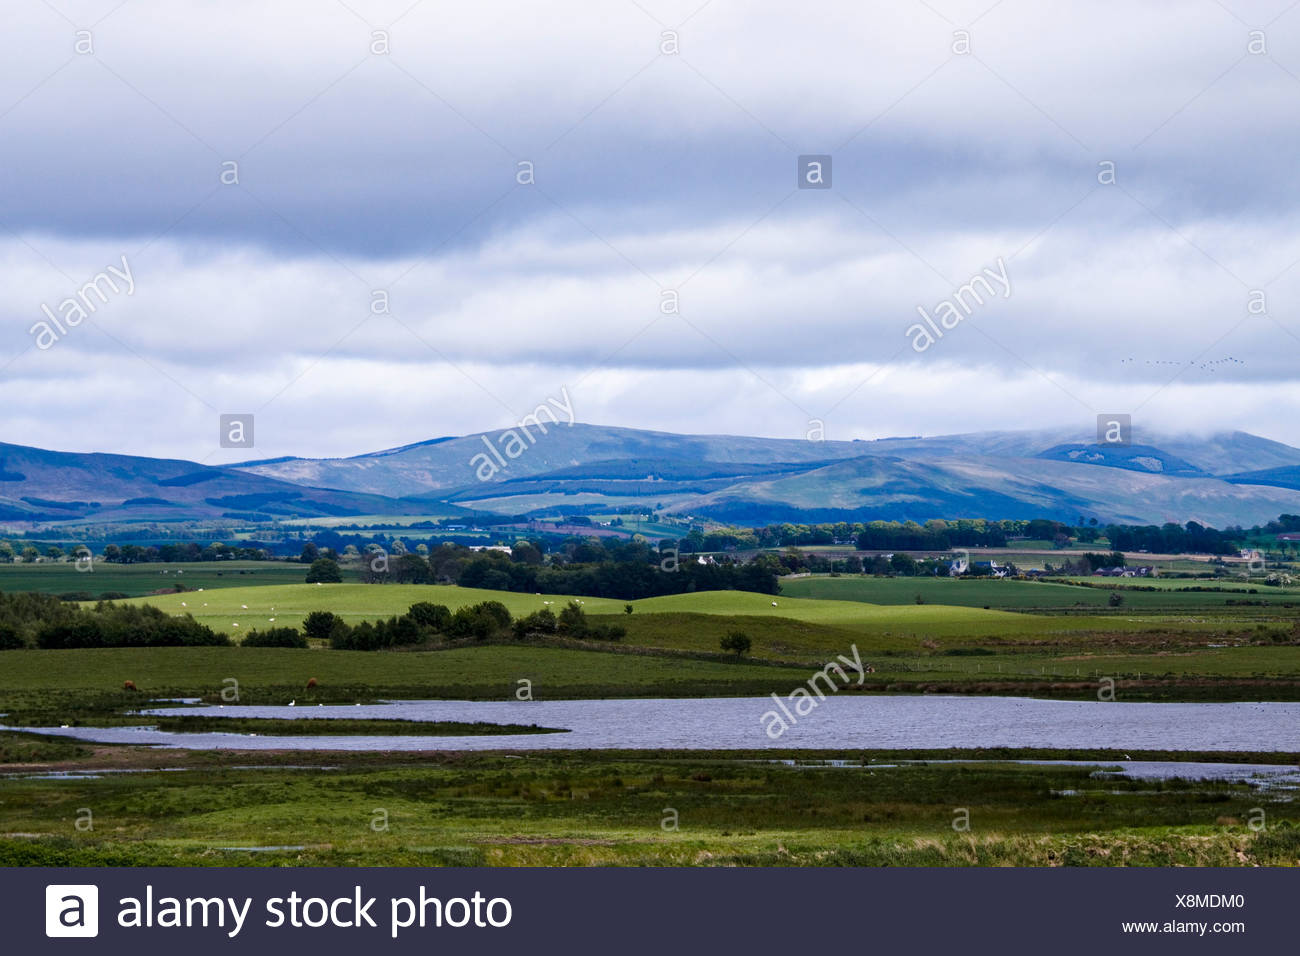 Scotland, Fife, Loch Leven, countryside and hills with stormy clouds above - Stock Image